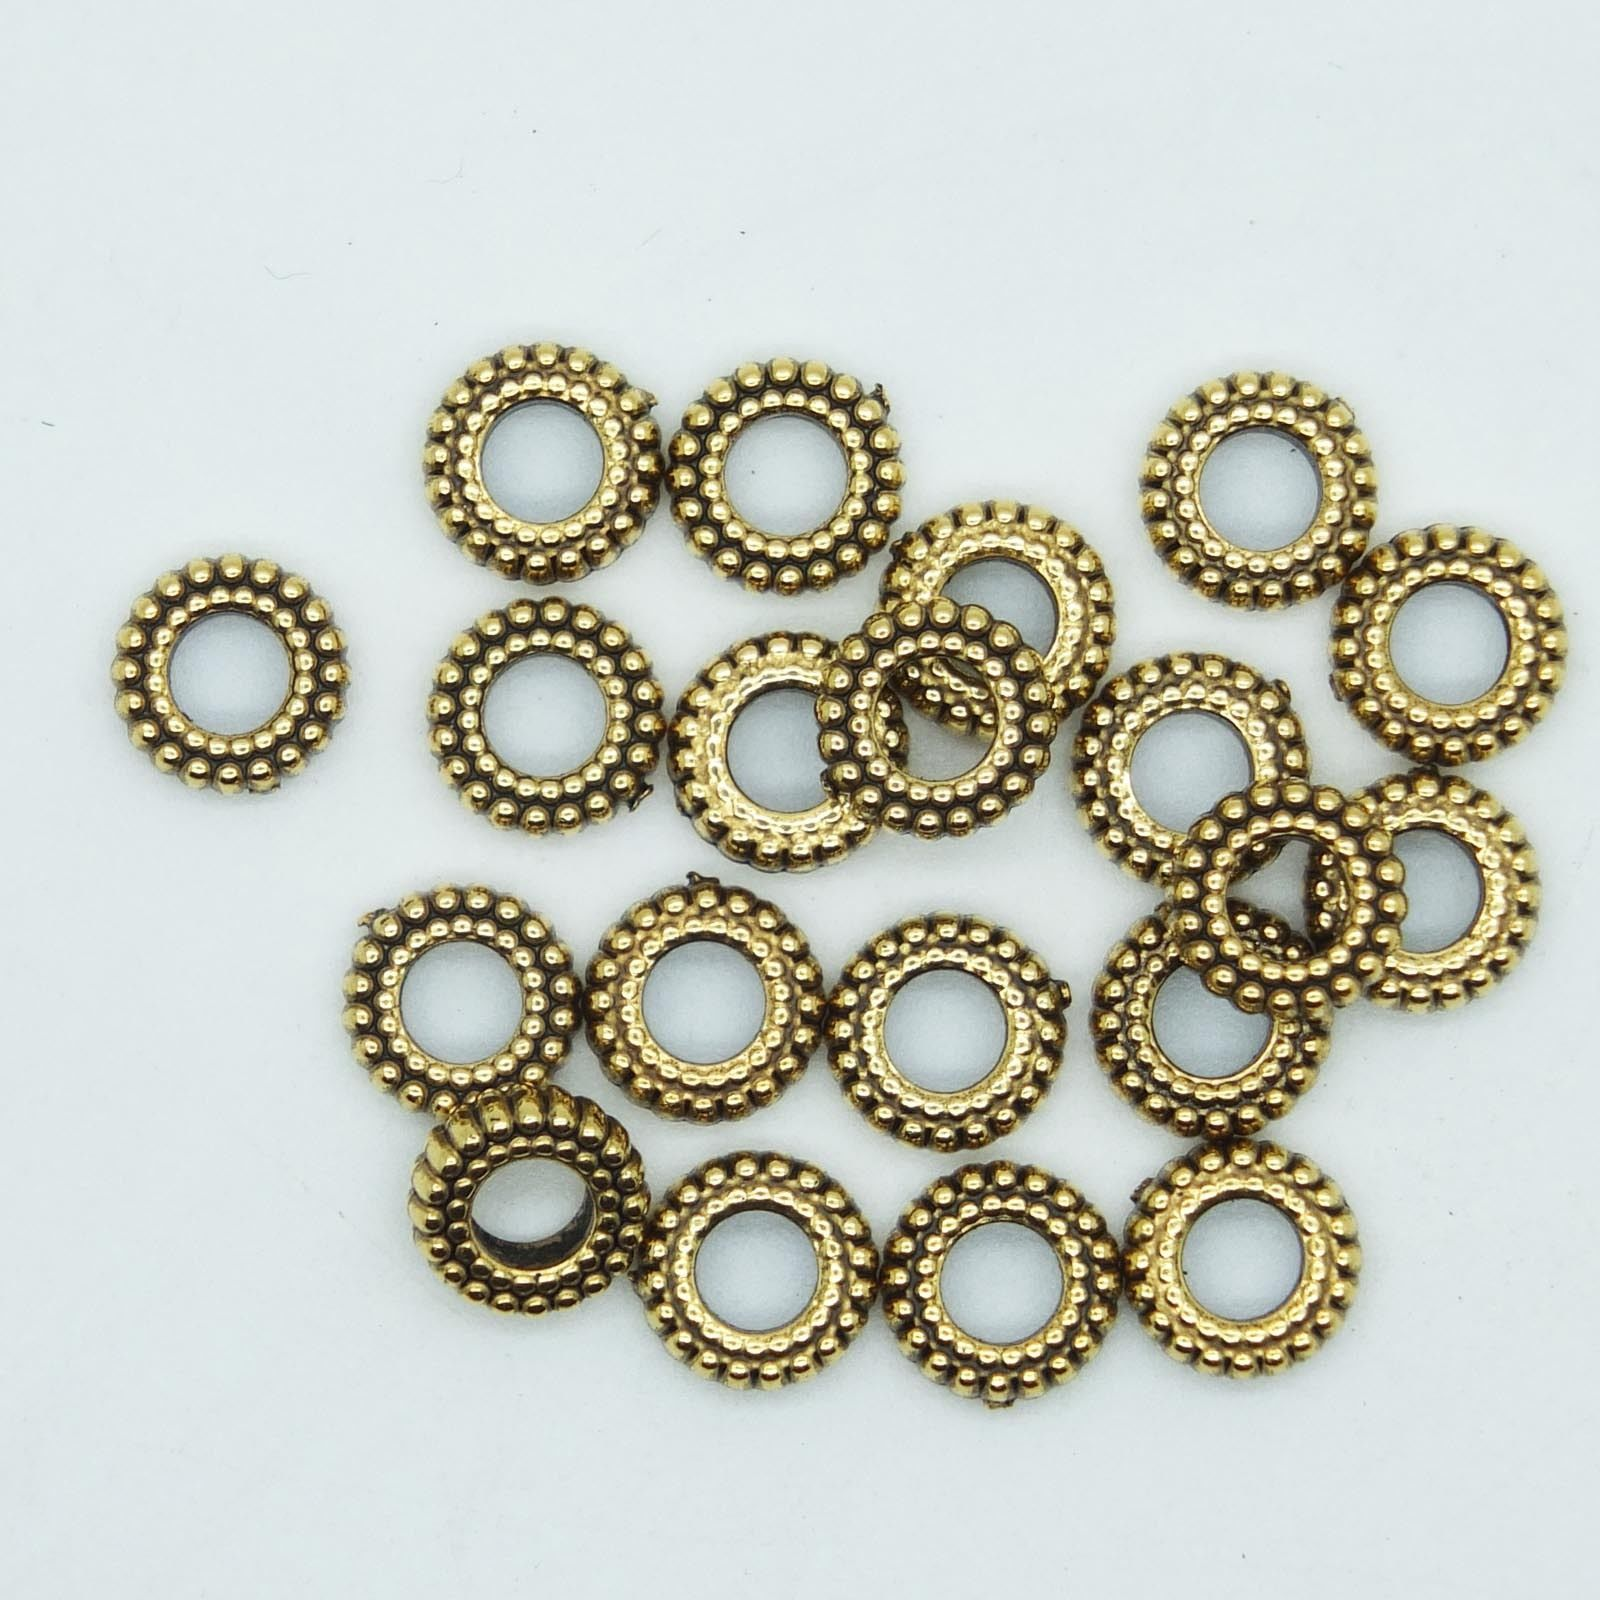 Primary image for Tire Ripple Disc Ring Spacer Bead 8mm Metalized Large Hole Antiqued Gold pk/20